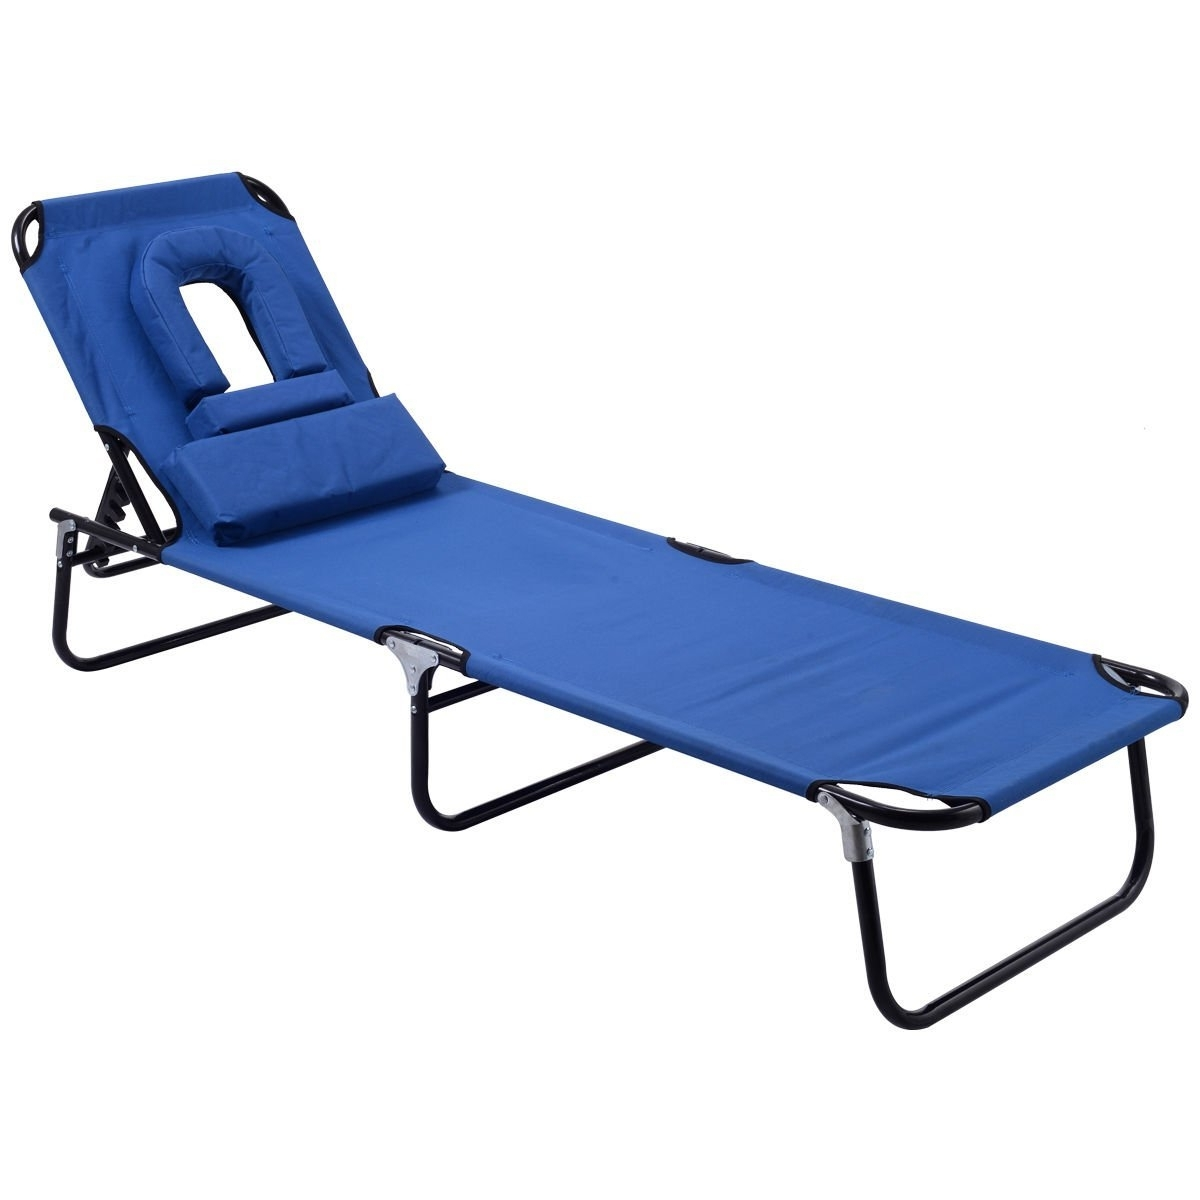 Favorite Folding Chaise Lounge Chairs For Outdoor For Amazon: Goplus Folding Chaise Lounge Chair Bed Outdoor Patio (View 2 of 15)